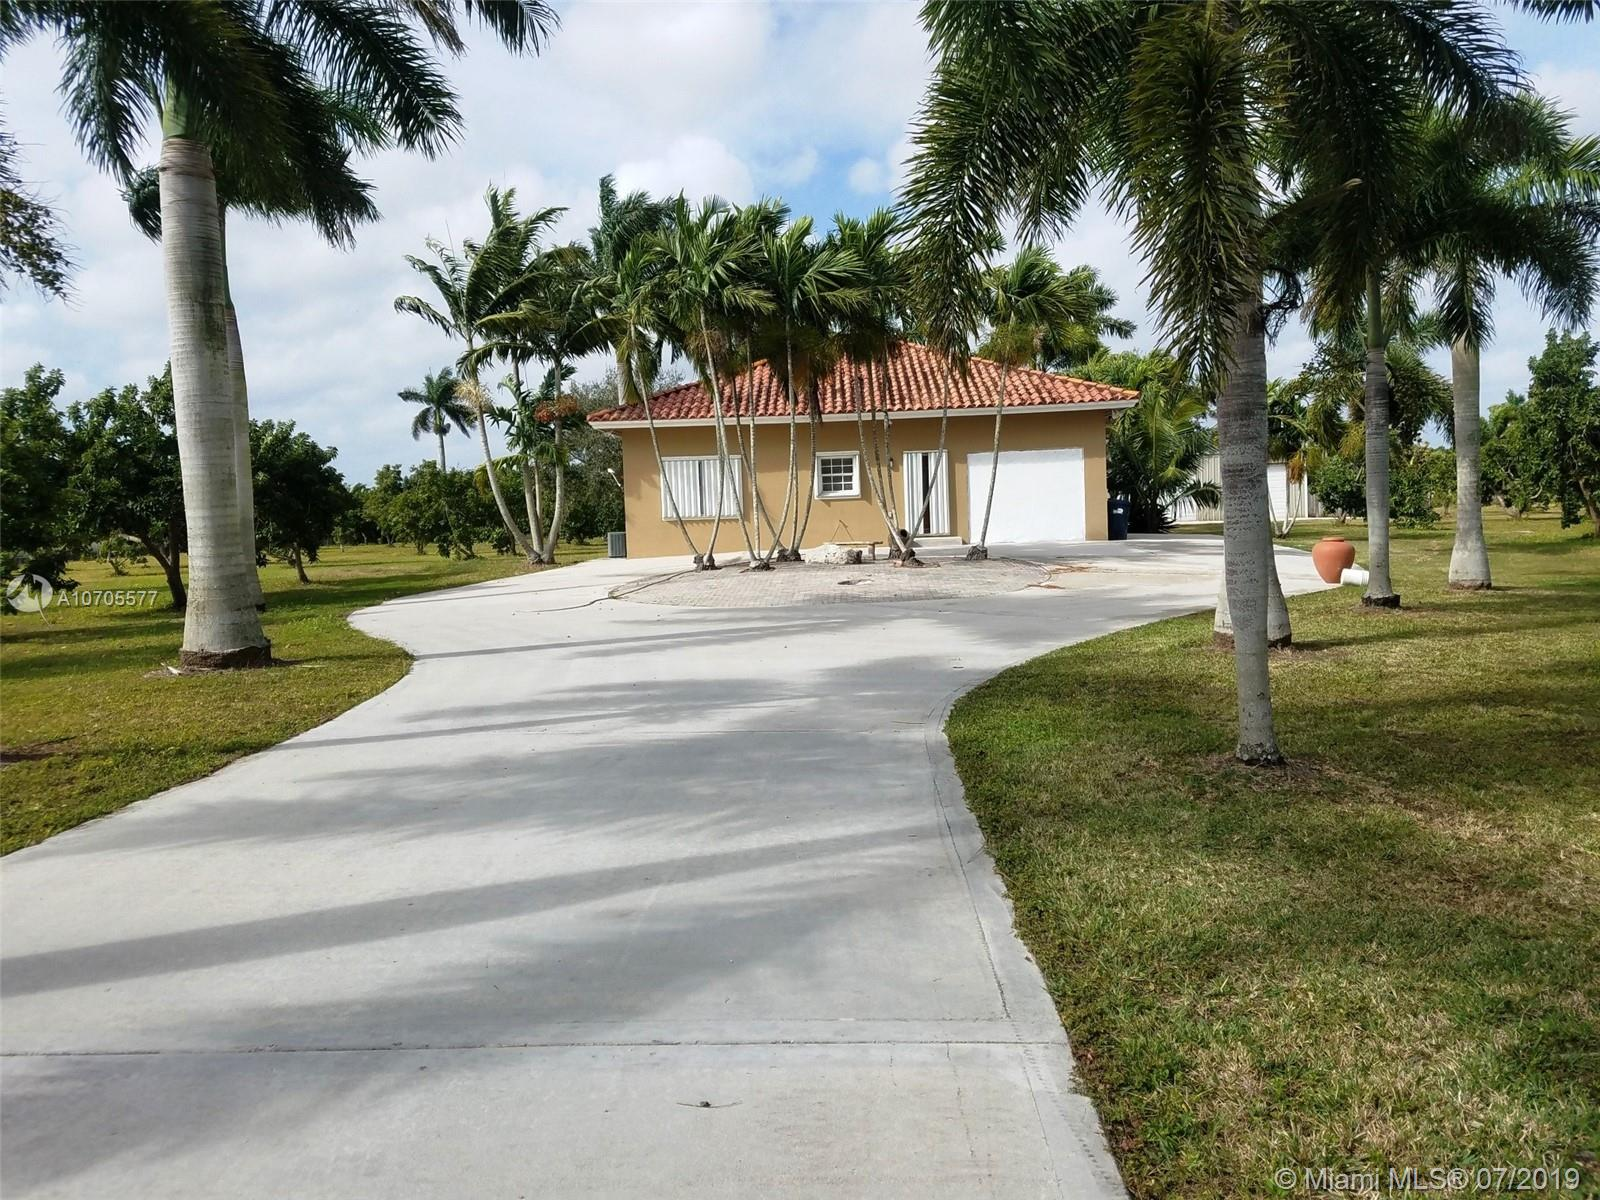 20200 SW 280 St Incl Utili #Guest house, Homestead, FL 33031 - MLS  A10705577 - Coldwell Banker